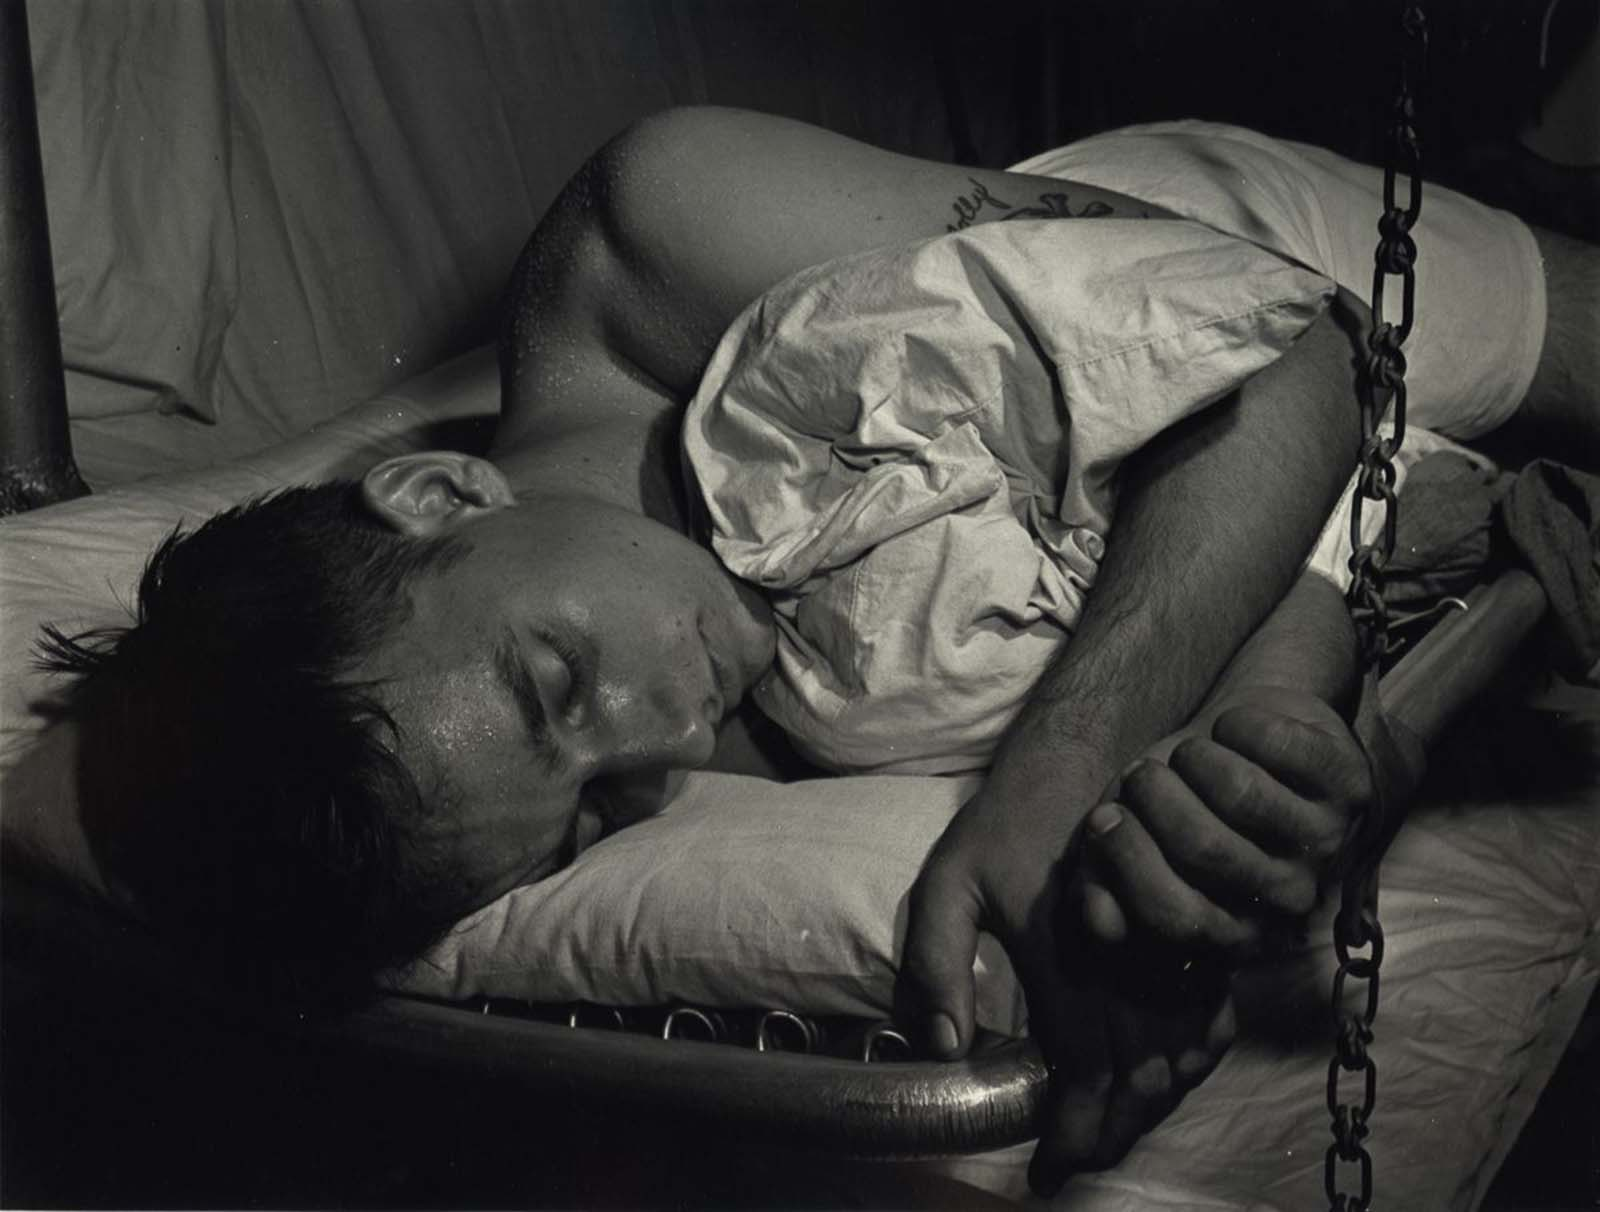 Sleeping man, c. 1942-1945.